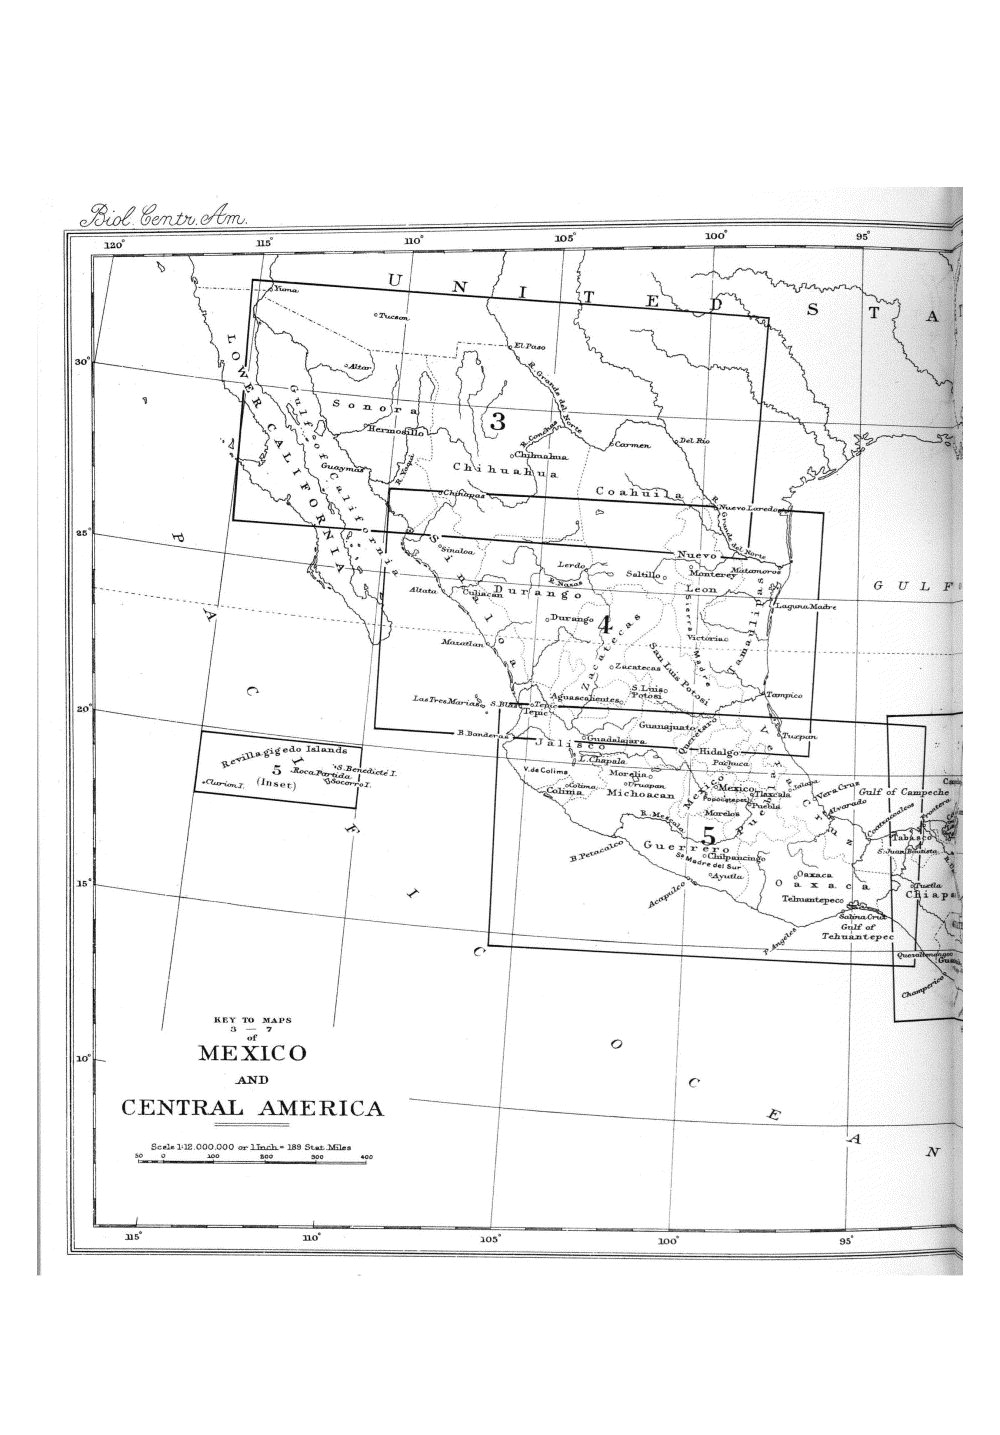 Maps of Central America,  Image number:bca_01_00_00_174